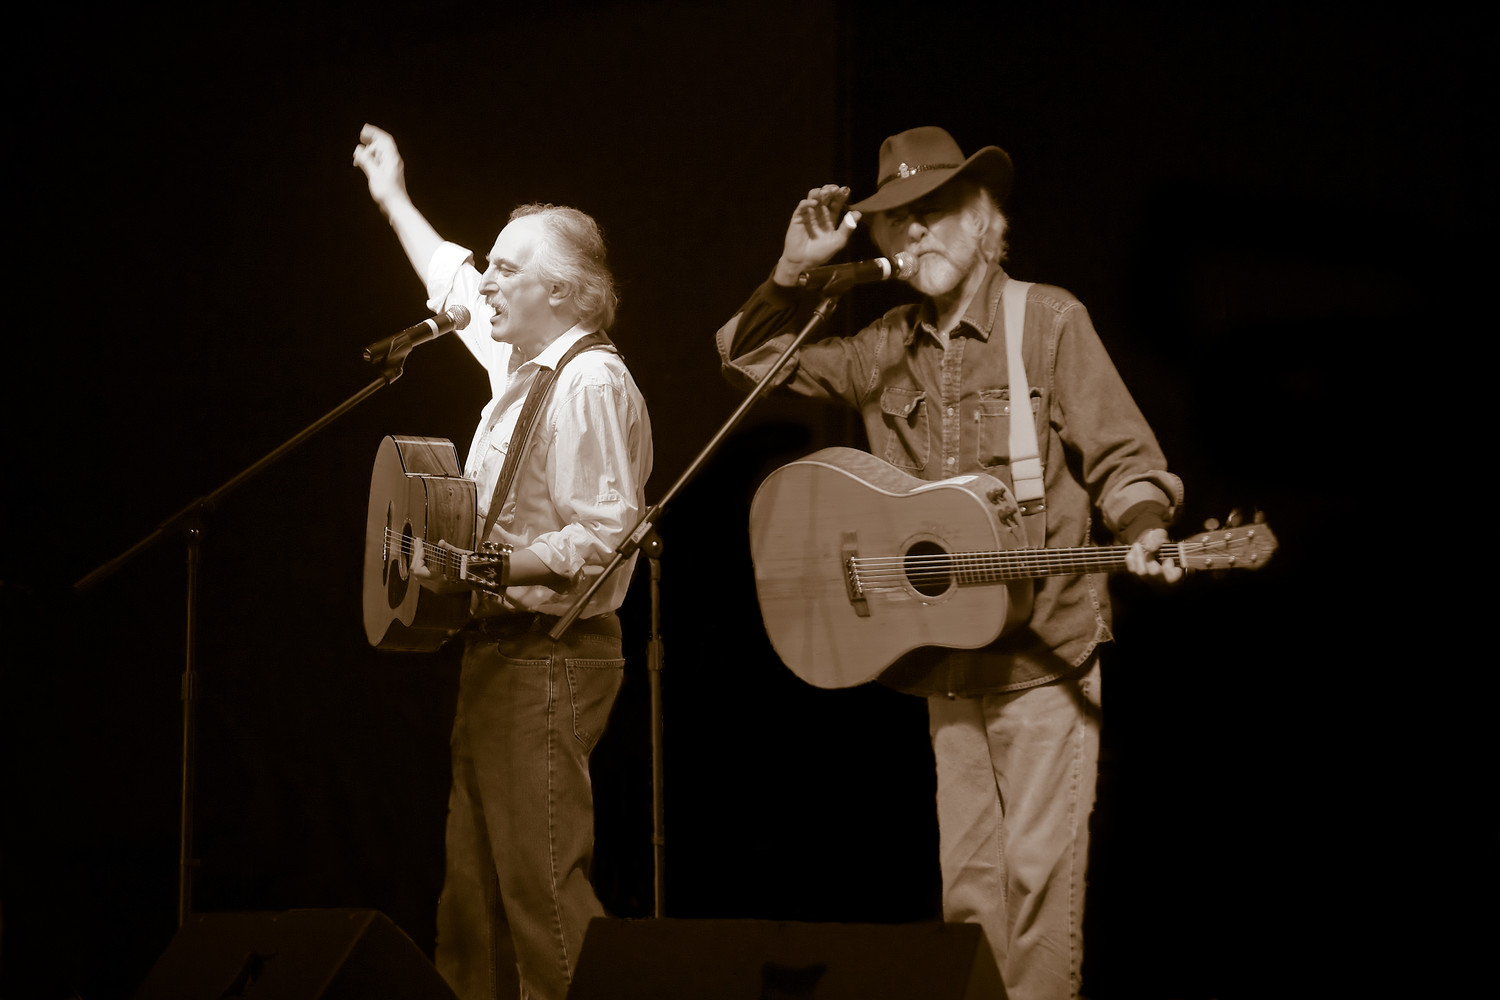 The folk rock duo Brewer & Shipley appear at  My Father's Place at the Roslyn Hotel, on Sept. 7.